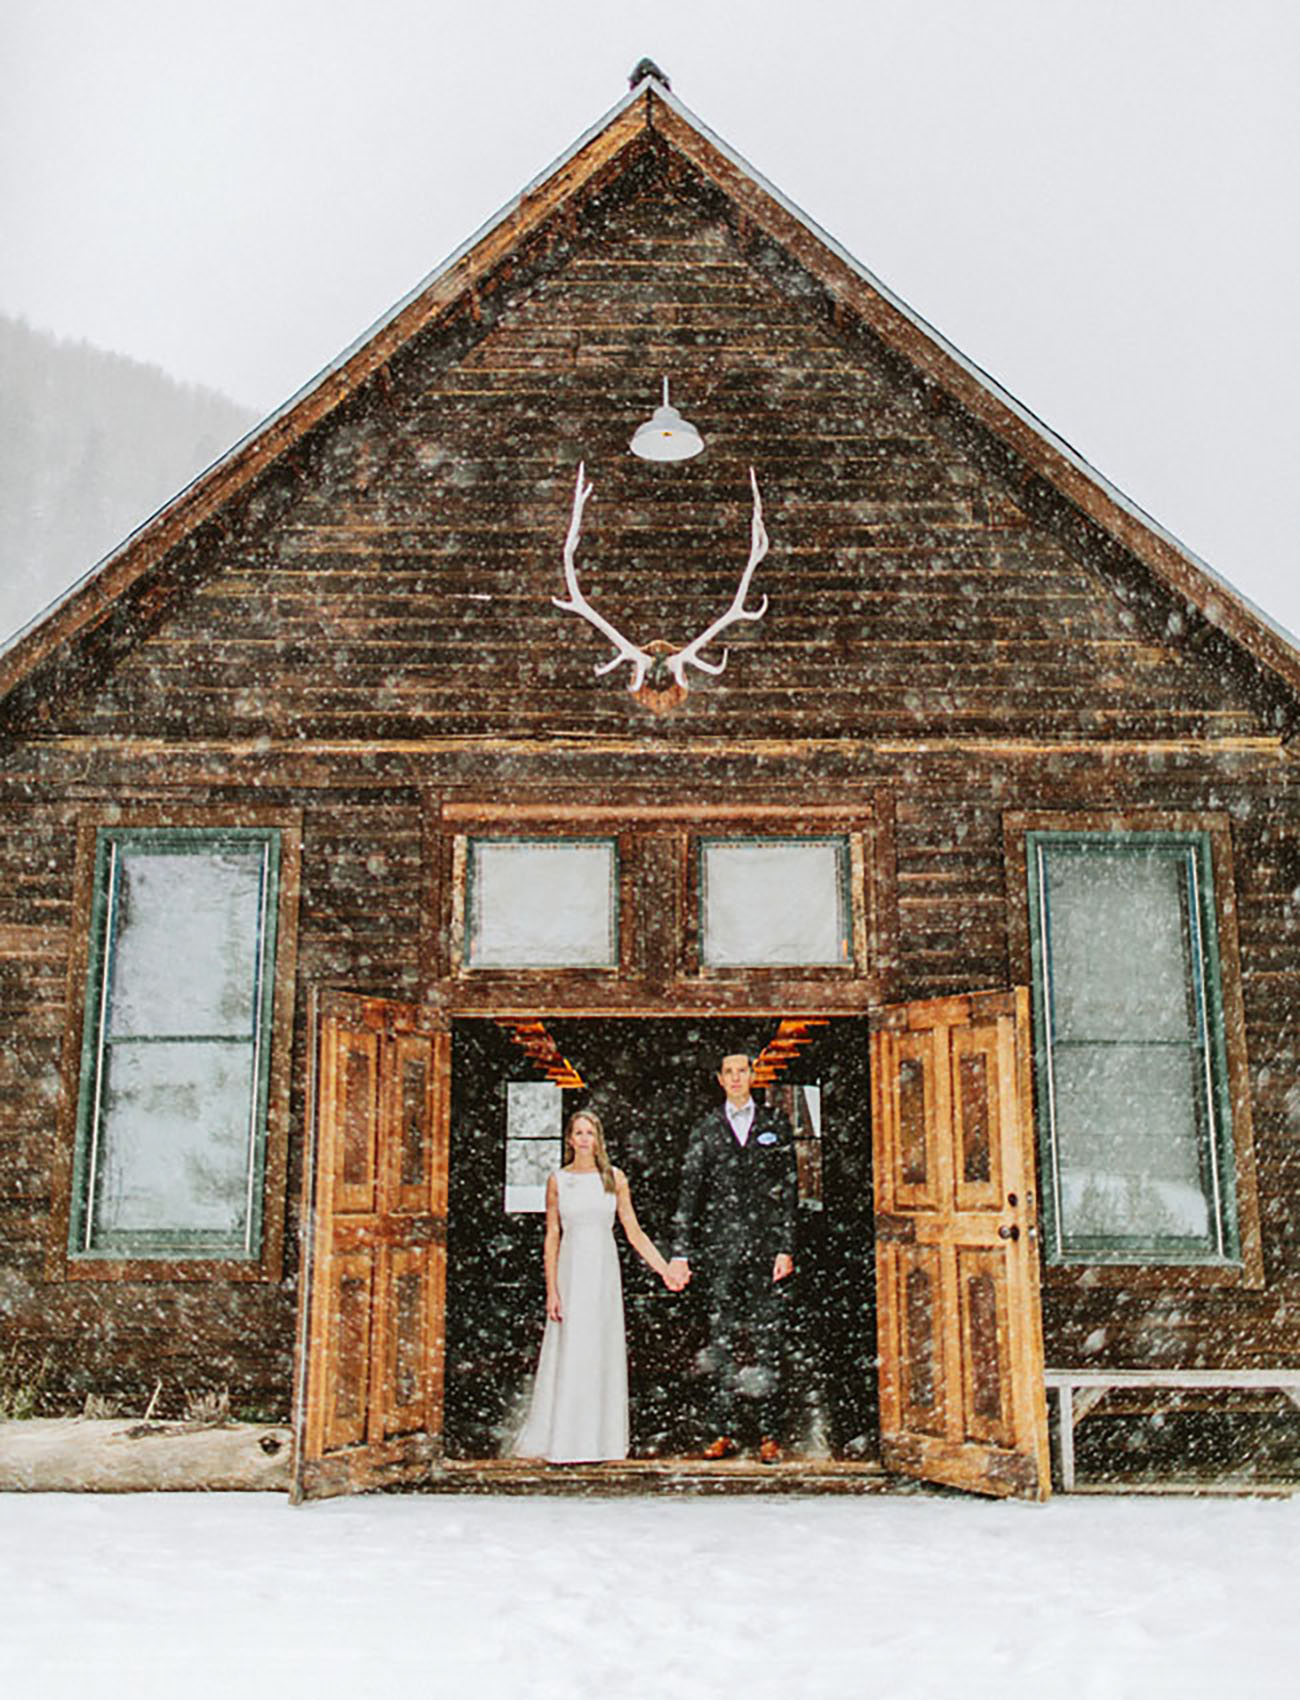 If snow is your thing, head to Hot Springs Dolores, Colorado to elope while flurries add the ambiance